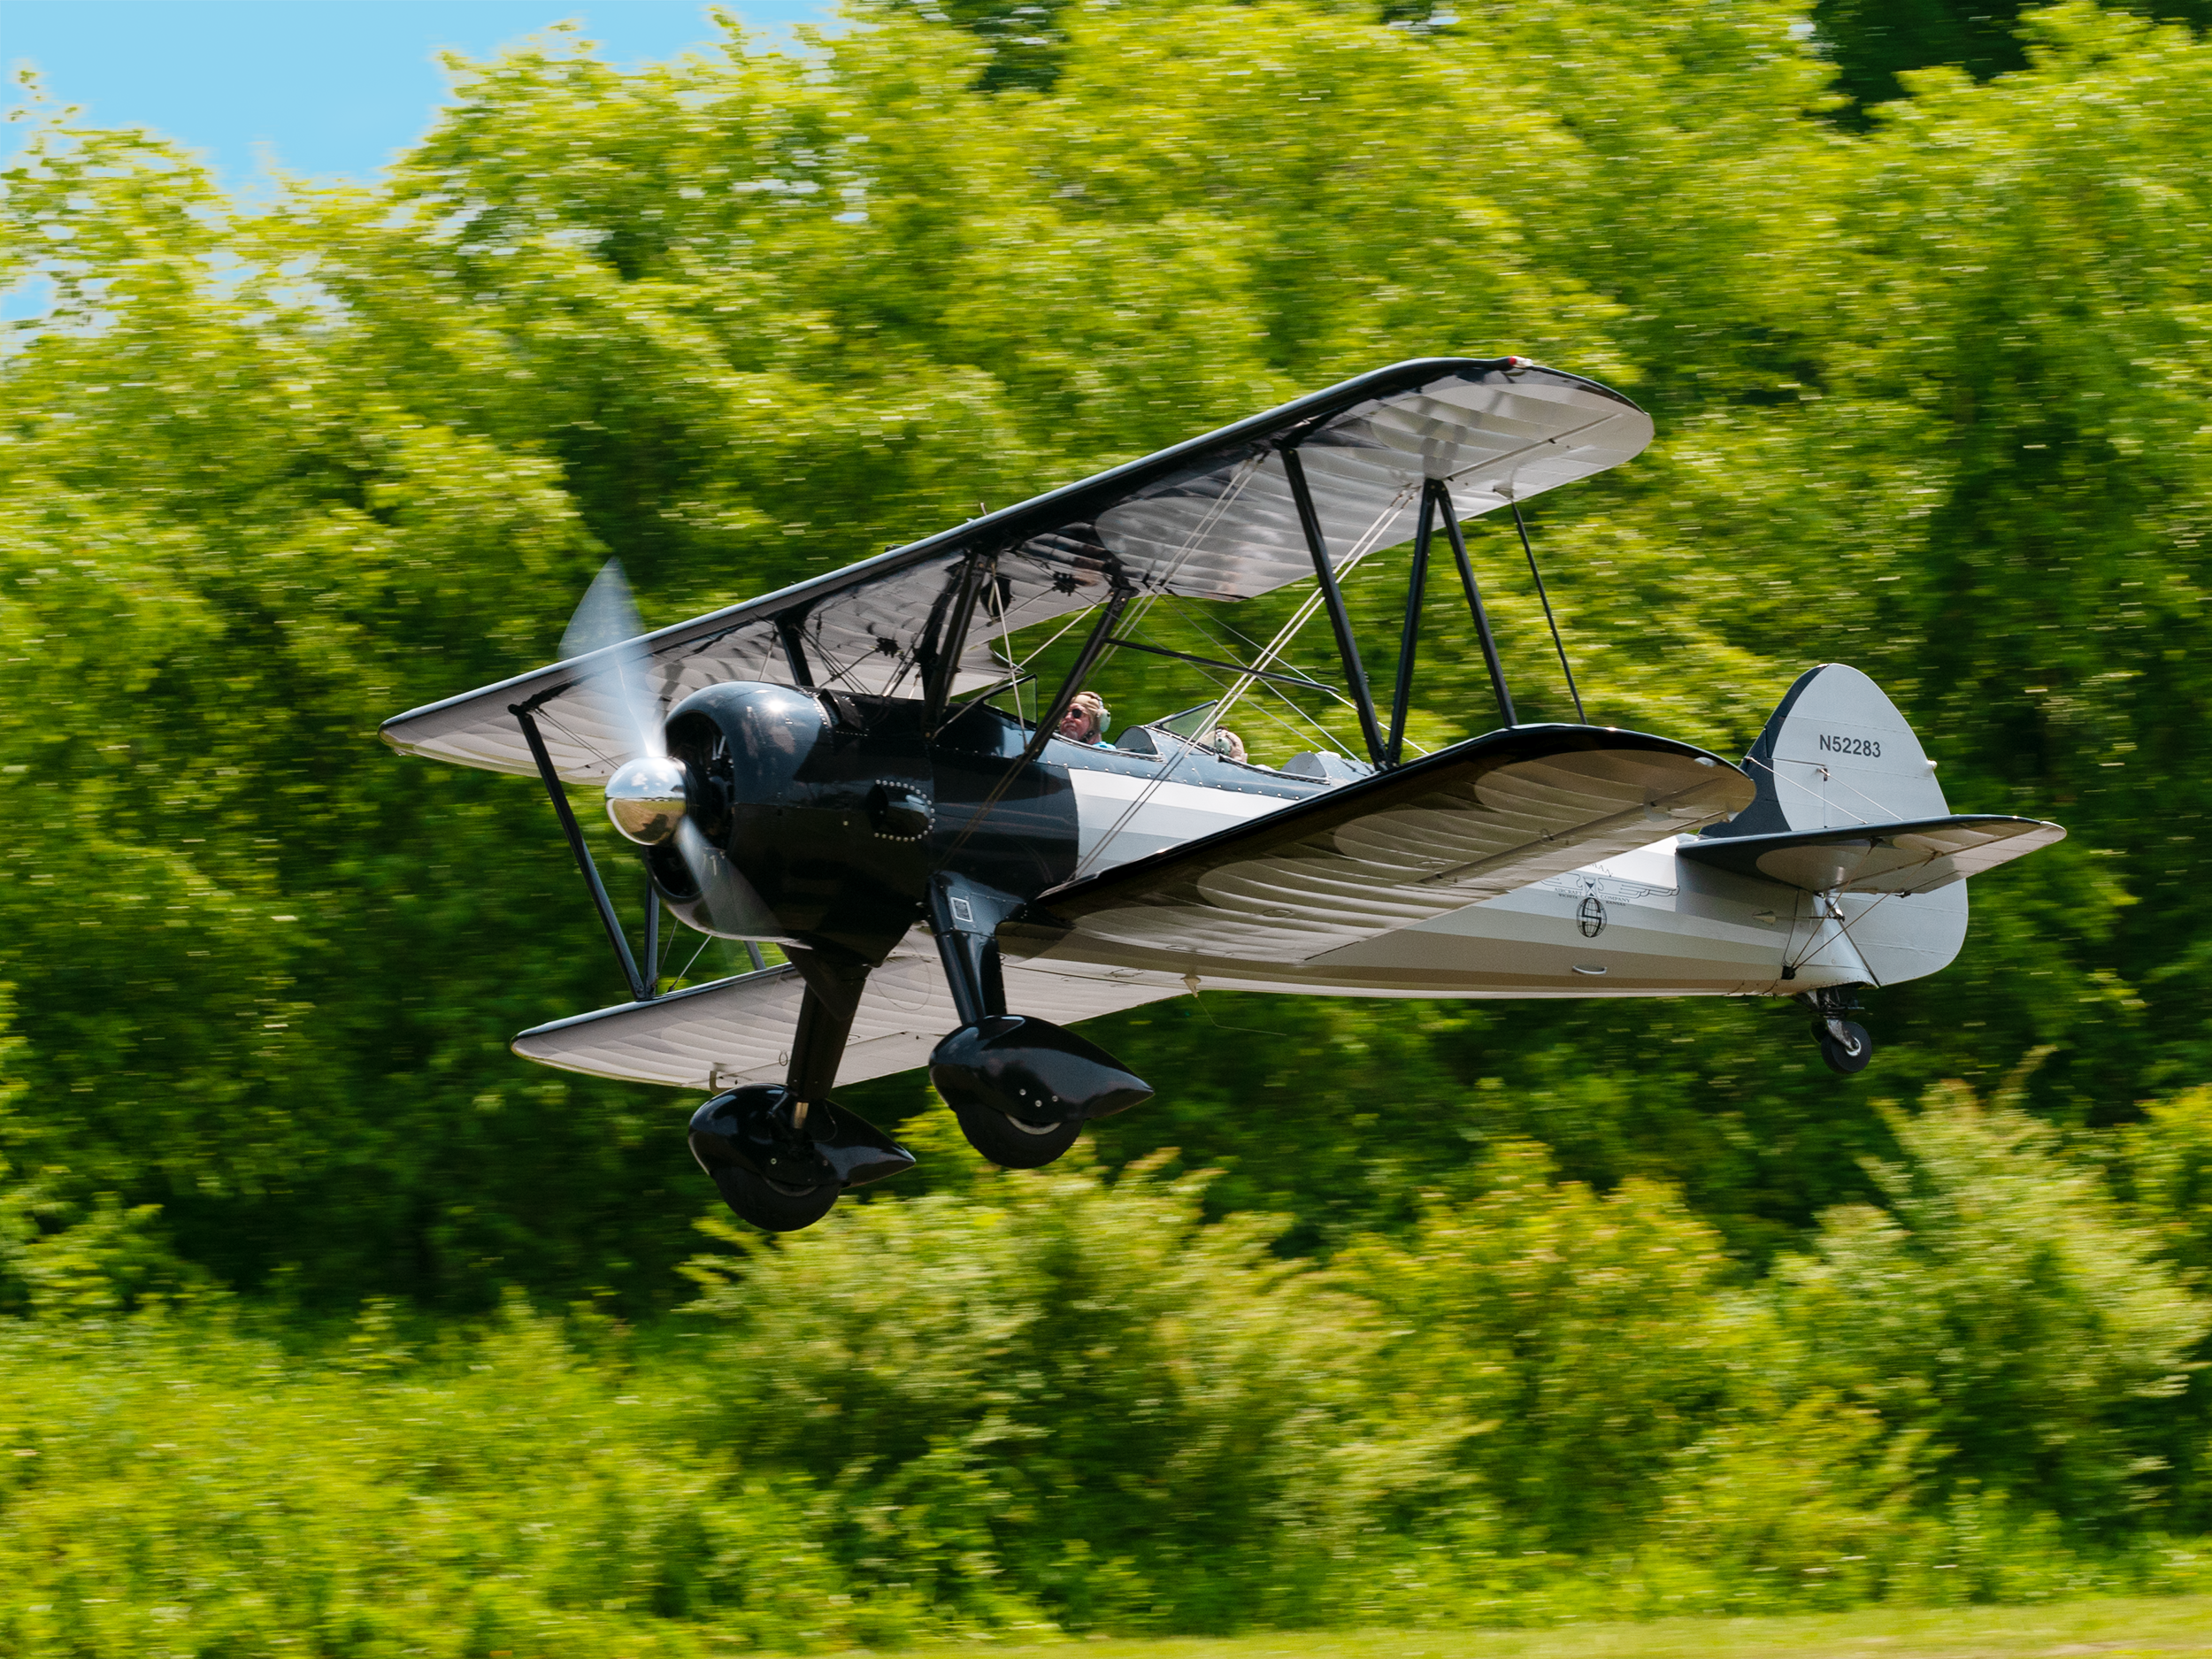 Typically at the end of May or beginning of June, the museum hosts an annual air show, when several of the vintage planes are flown. If you are lucky, you can take to the skies in this beautiful Stearman bi-plane.